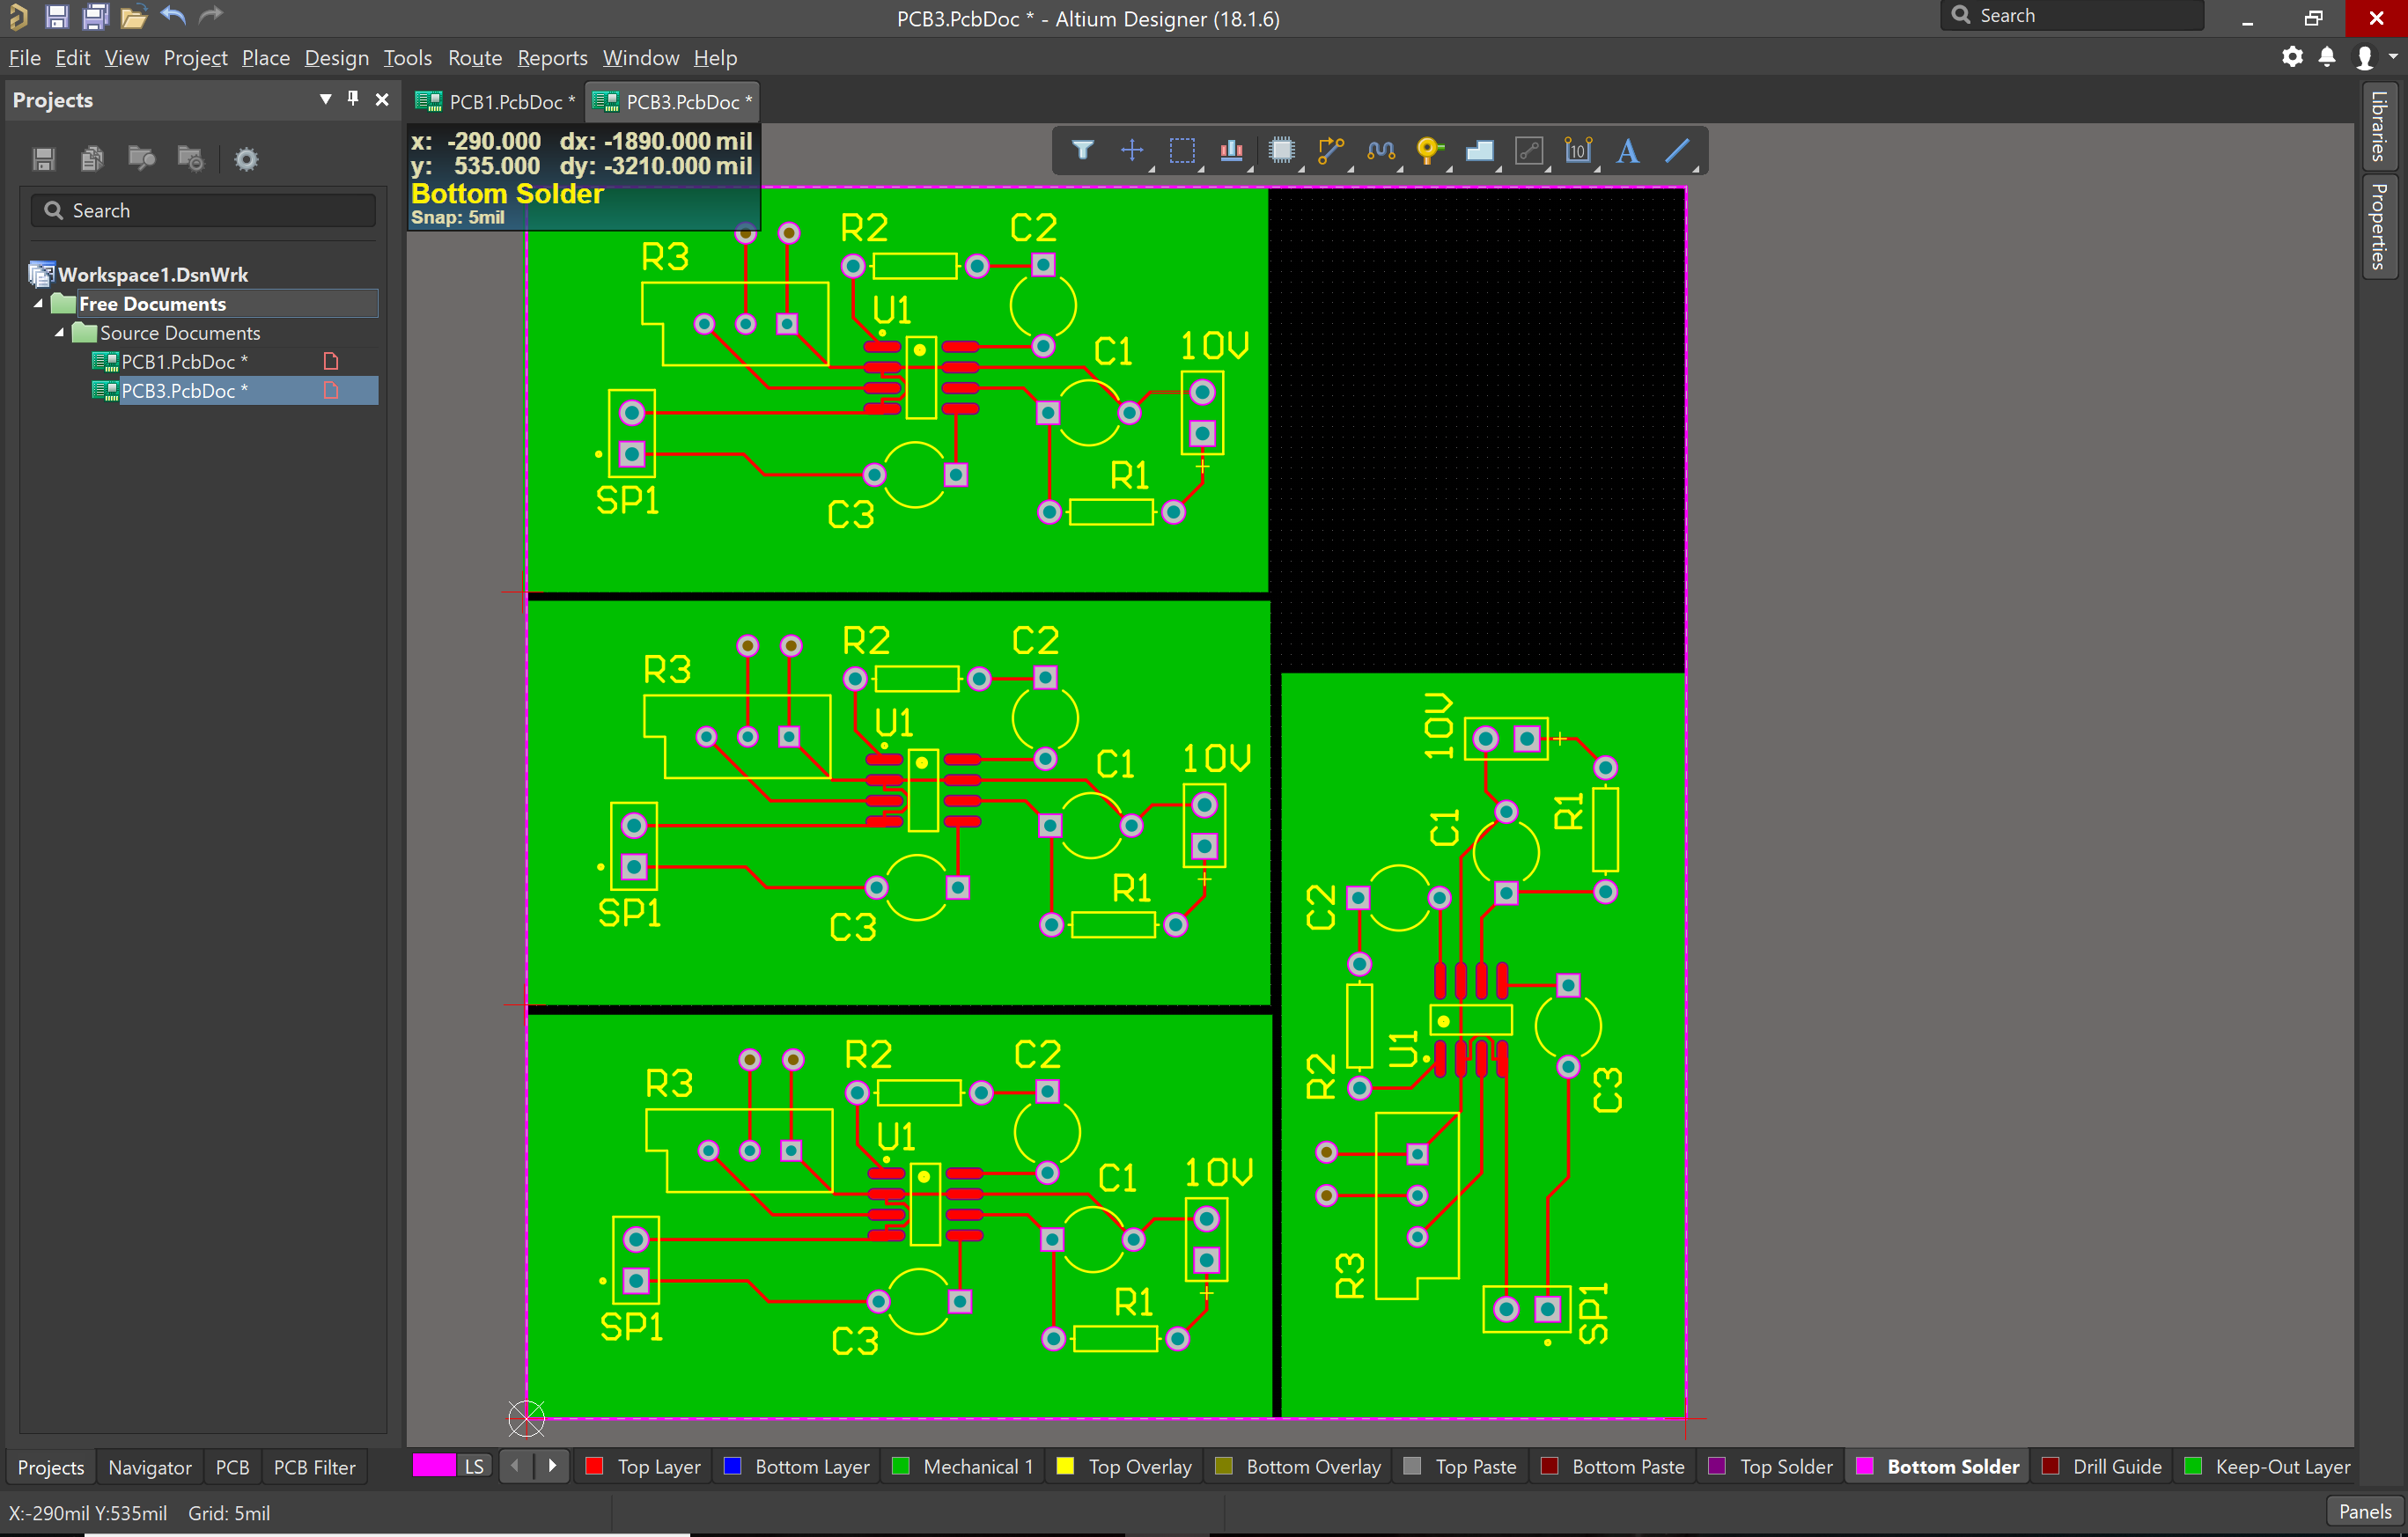 How To Panelize Your Pcbs Before Lunch With Altium Designer Pcb Outlining Flex Circuits Integral Fingers Manufacturing Processes 18 Embedded Board Array